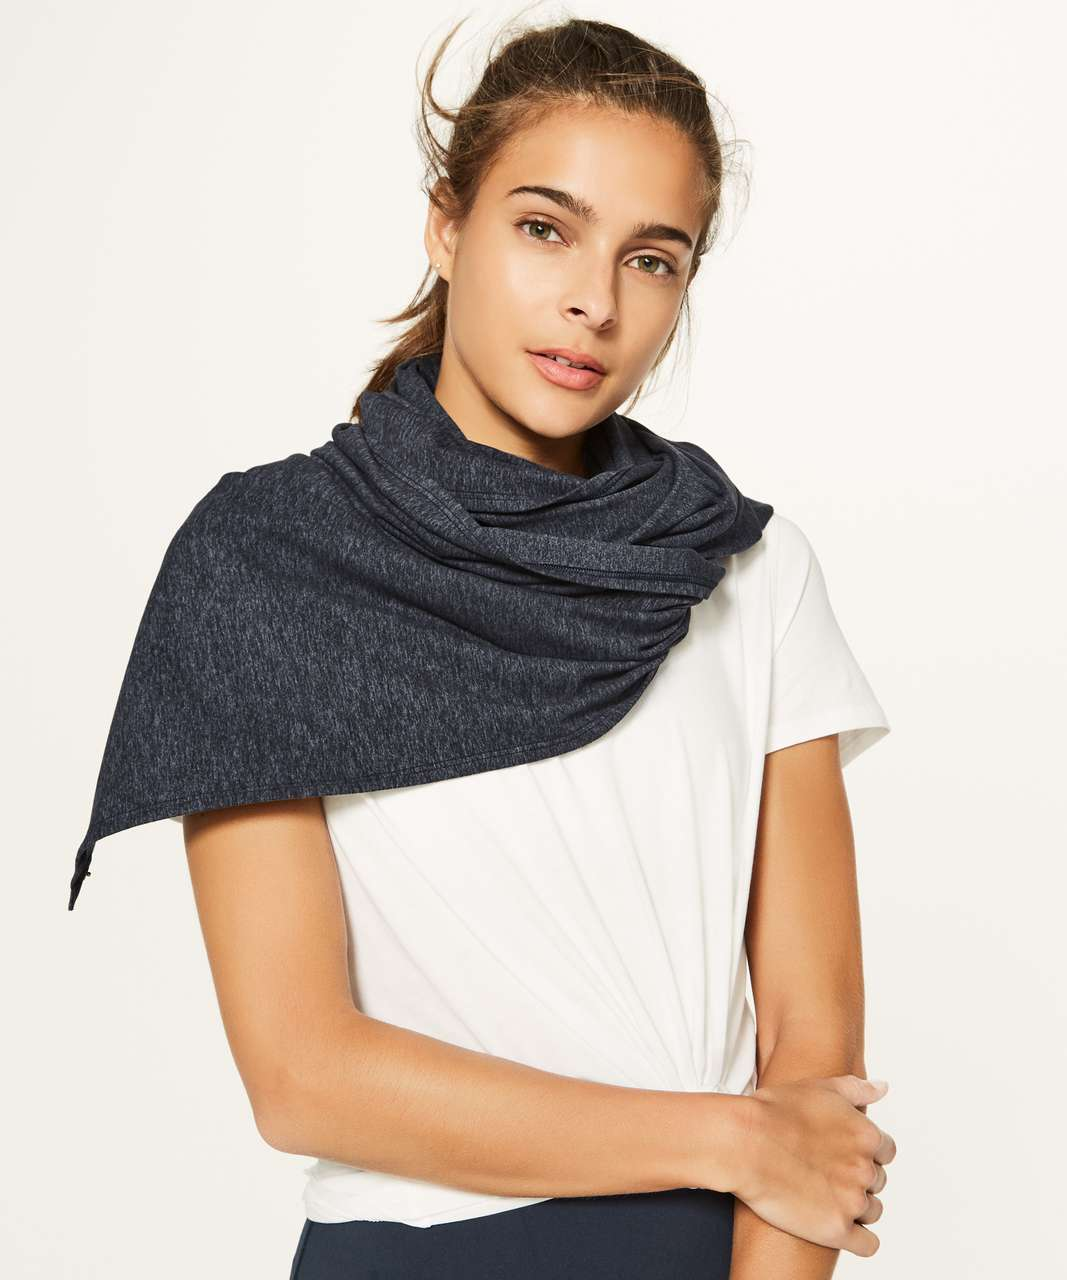 Lululemon Vinyasa Scarf (Rulu) - Heathered Dark Cast